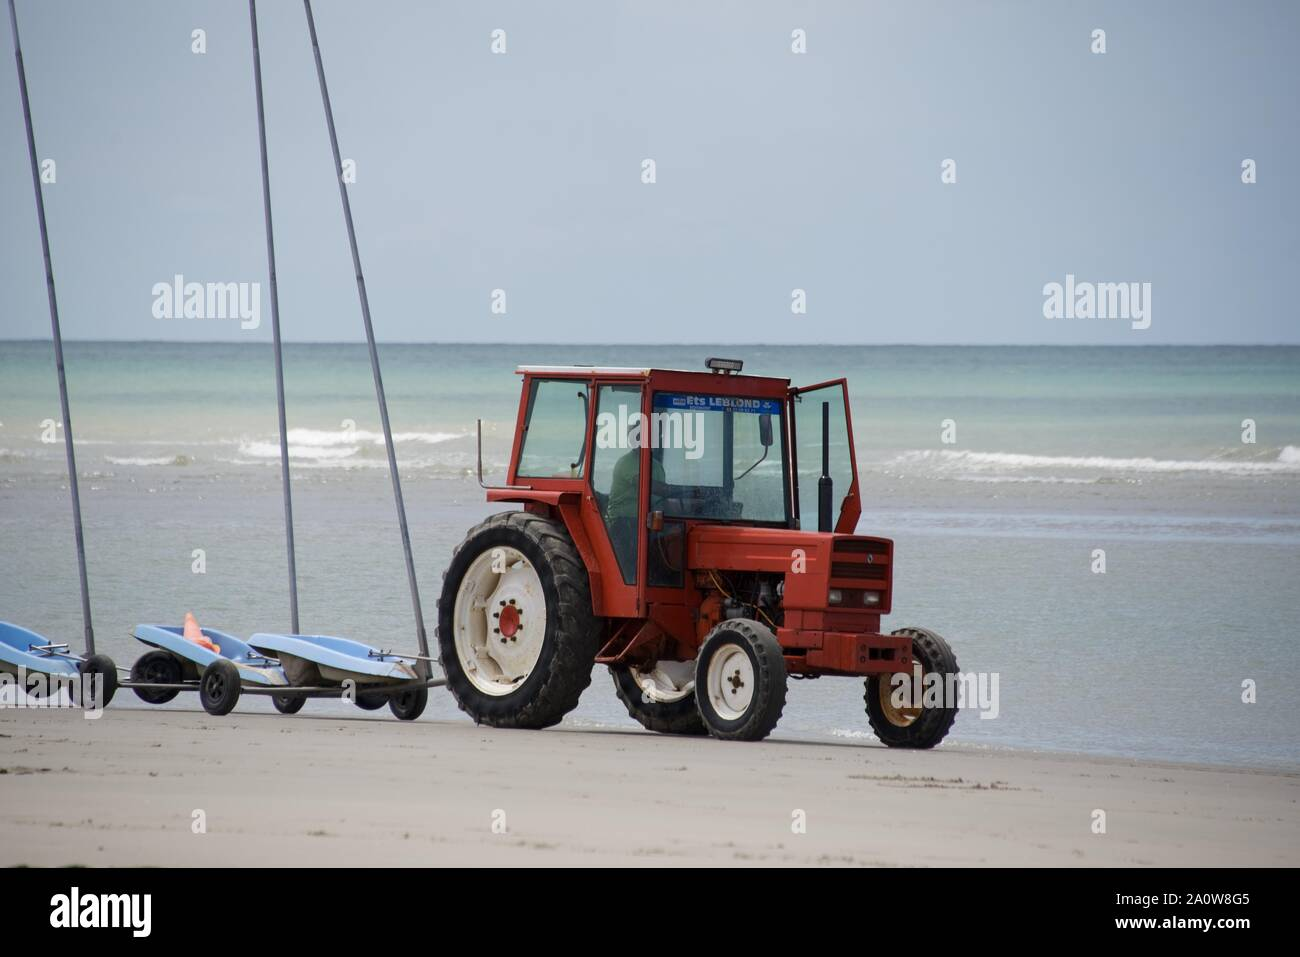 A tractor pulling 9 linked sand yachts, without sails, on to the beach in preparation for a competition Stock Photo